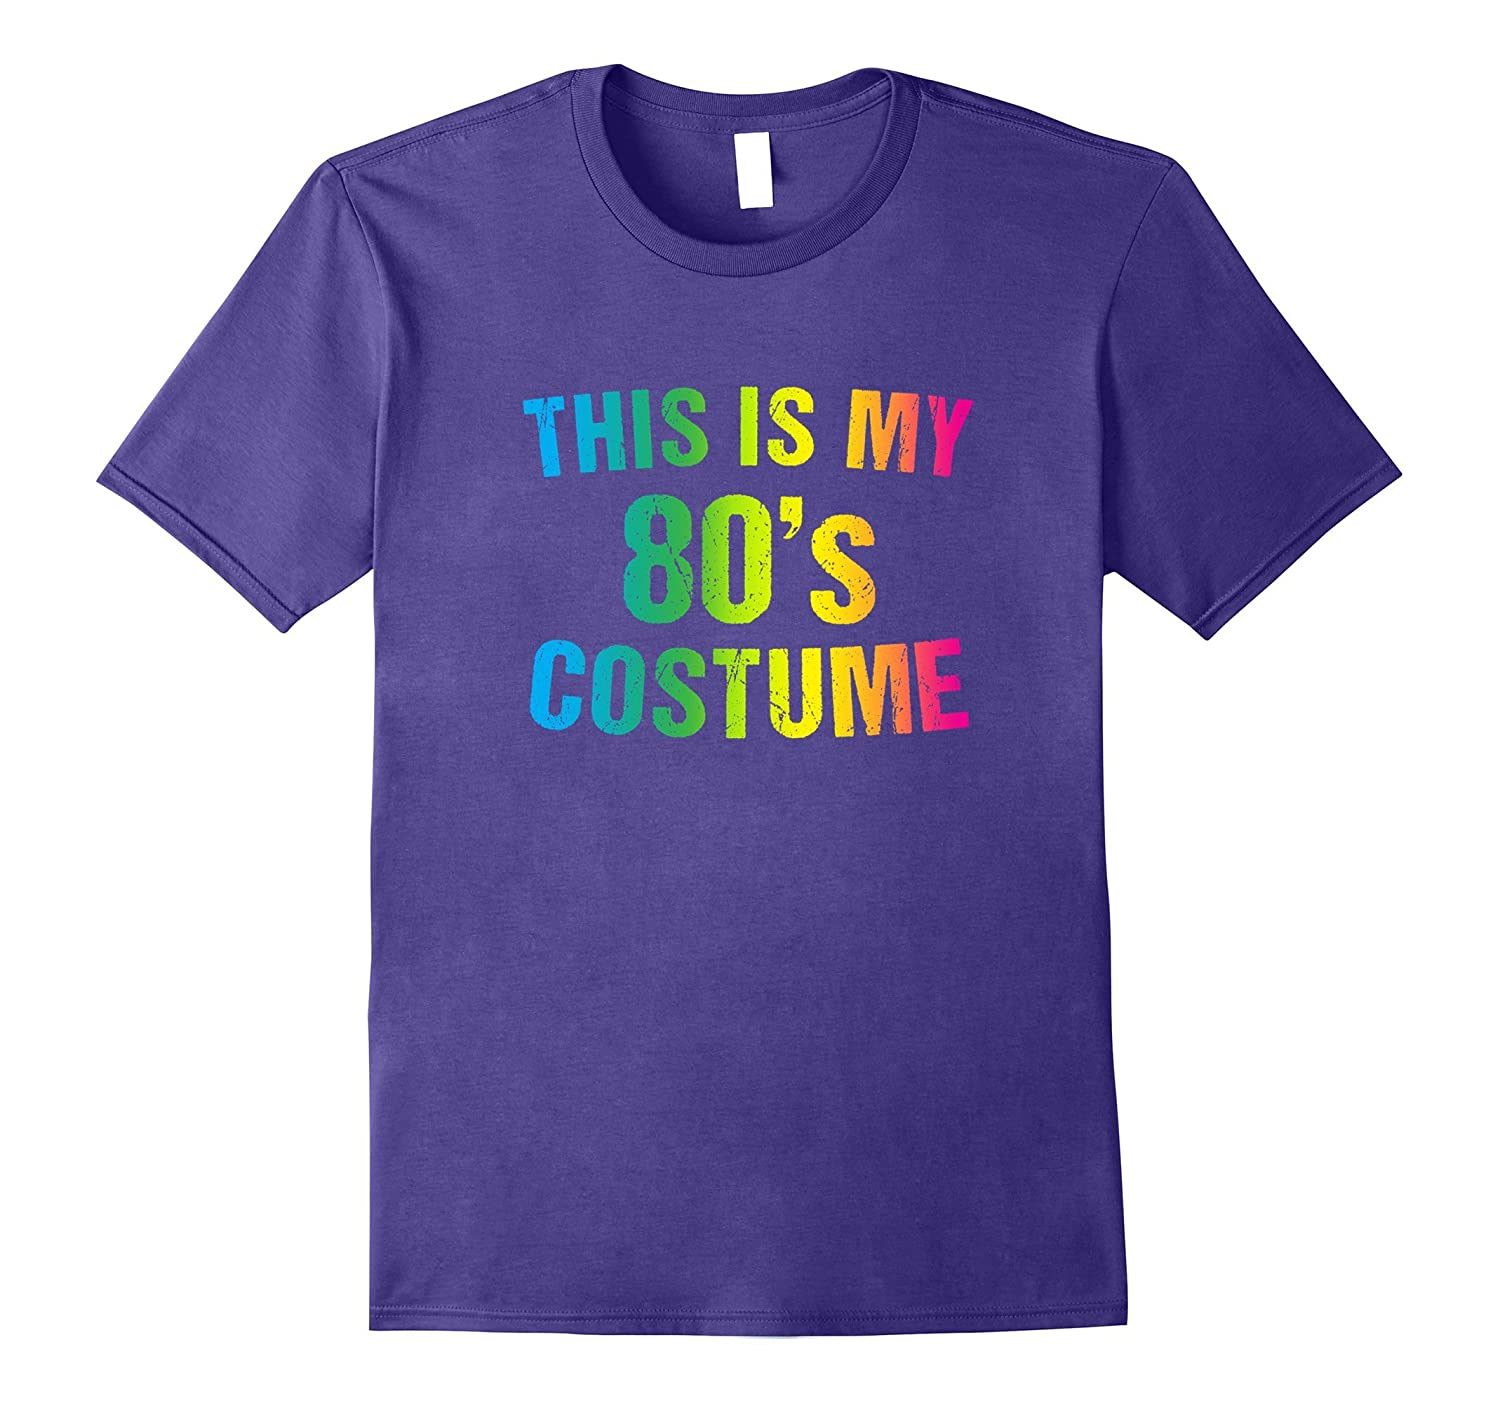 80s Costume Halloween Shirt Retro 1980s for Men Women Girls-FL